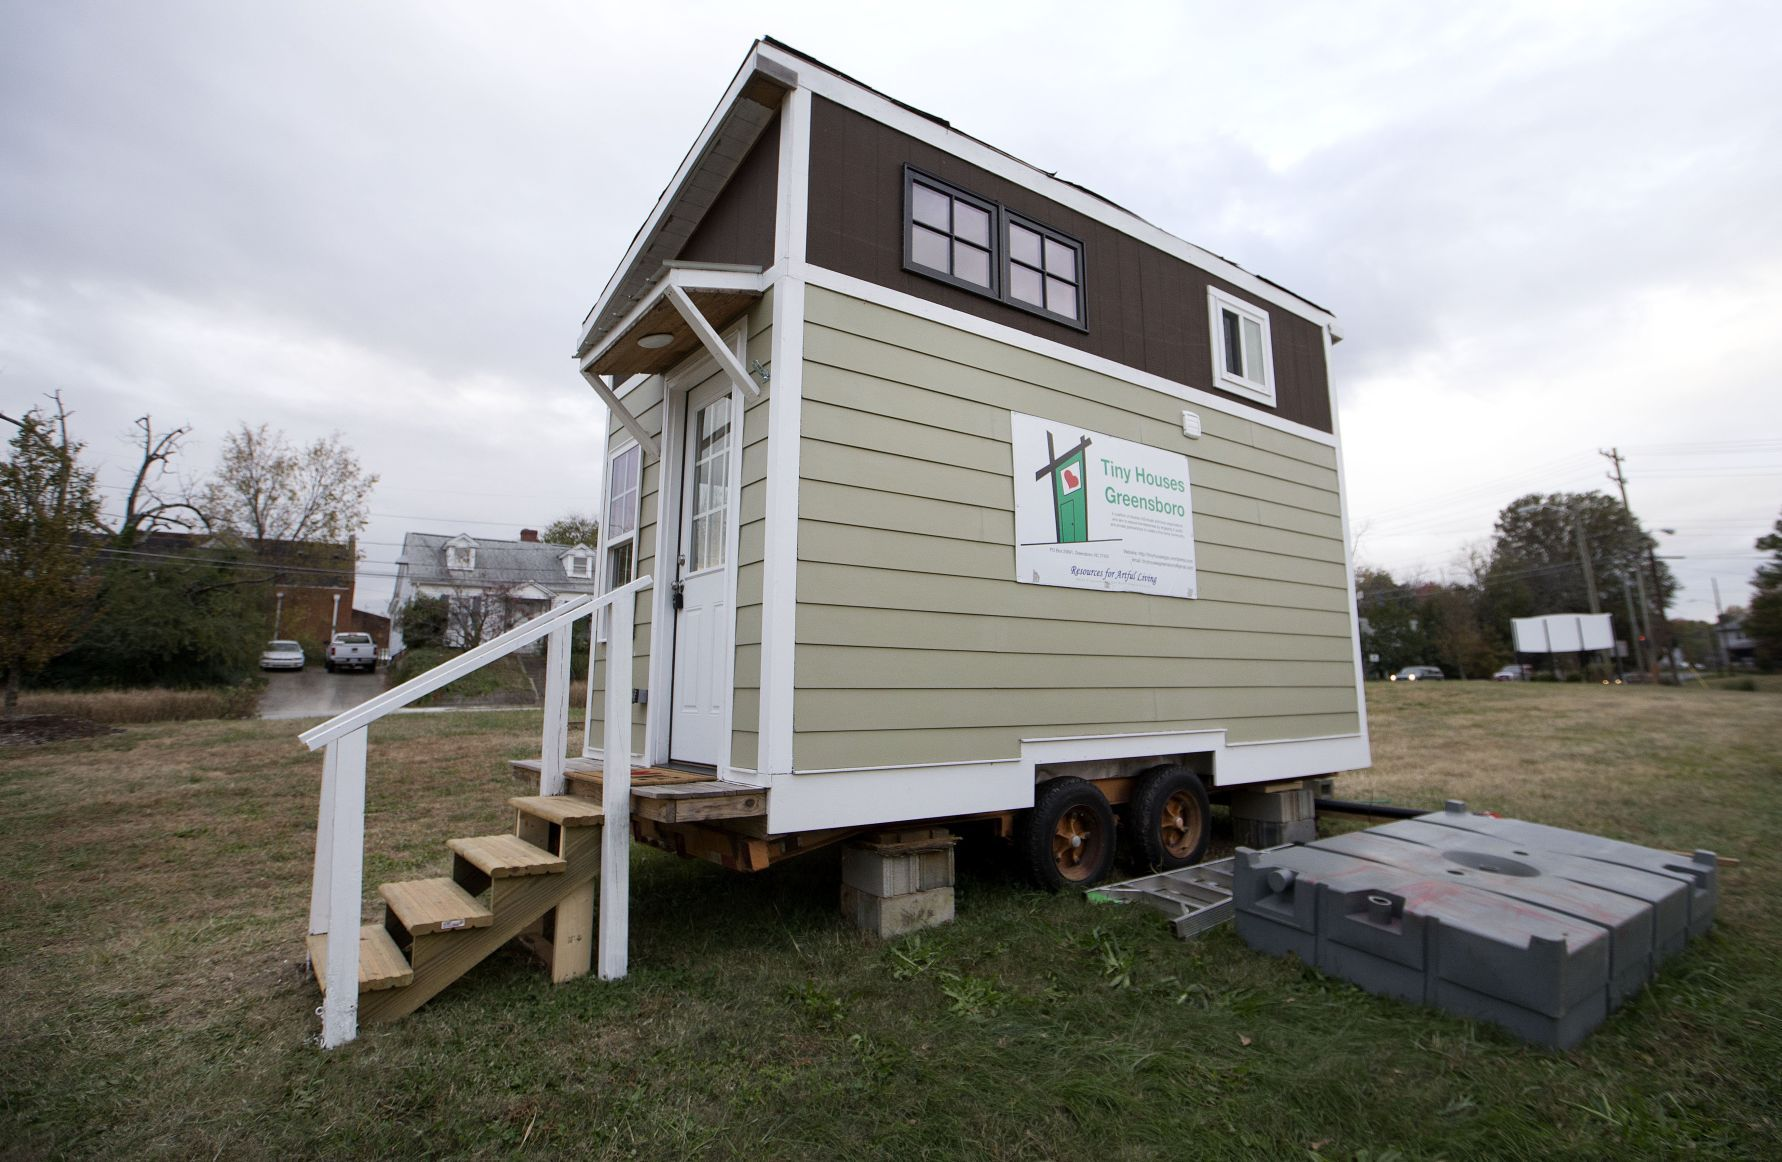 Tiny Houses Group Receives 44 000 In Property While Still